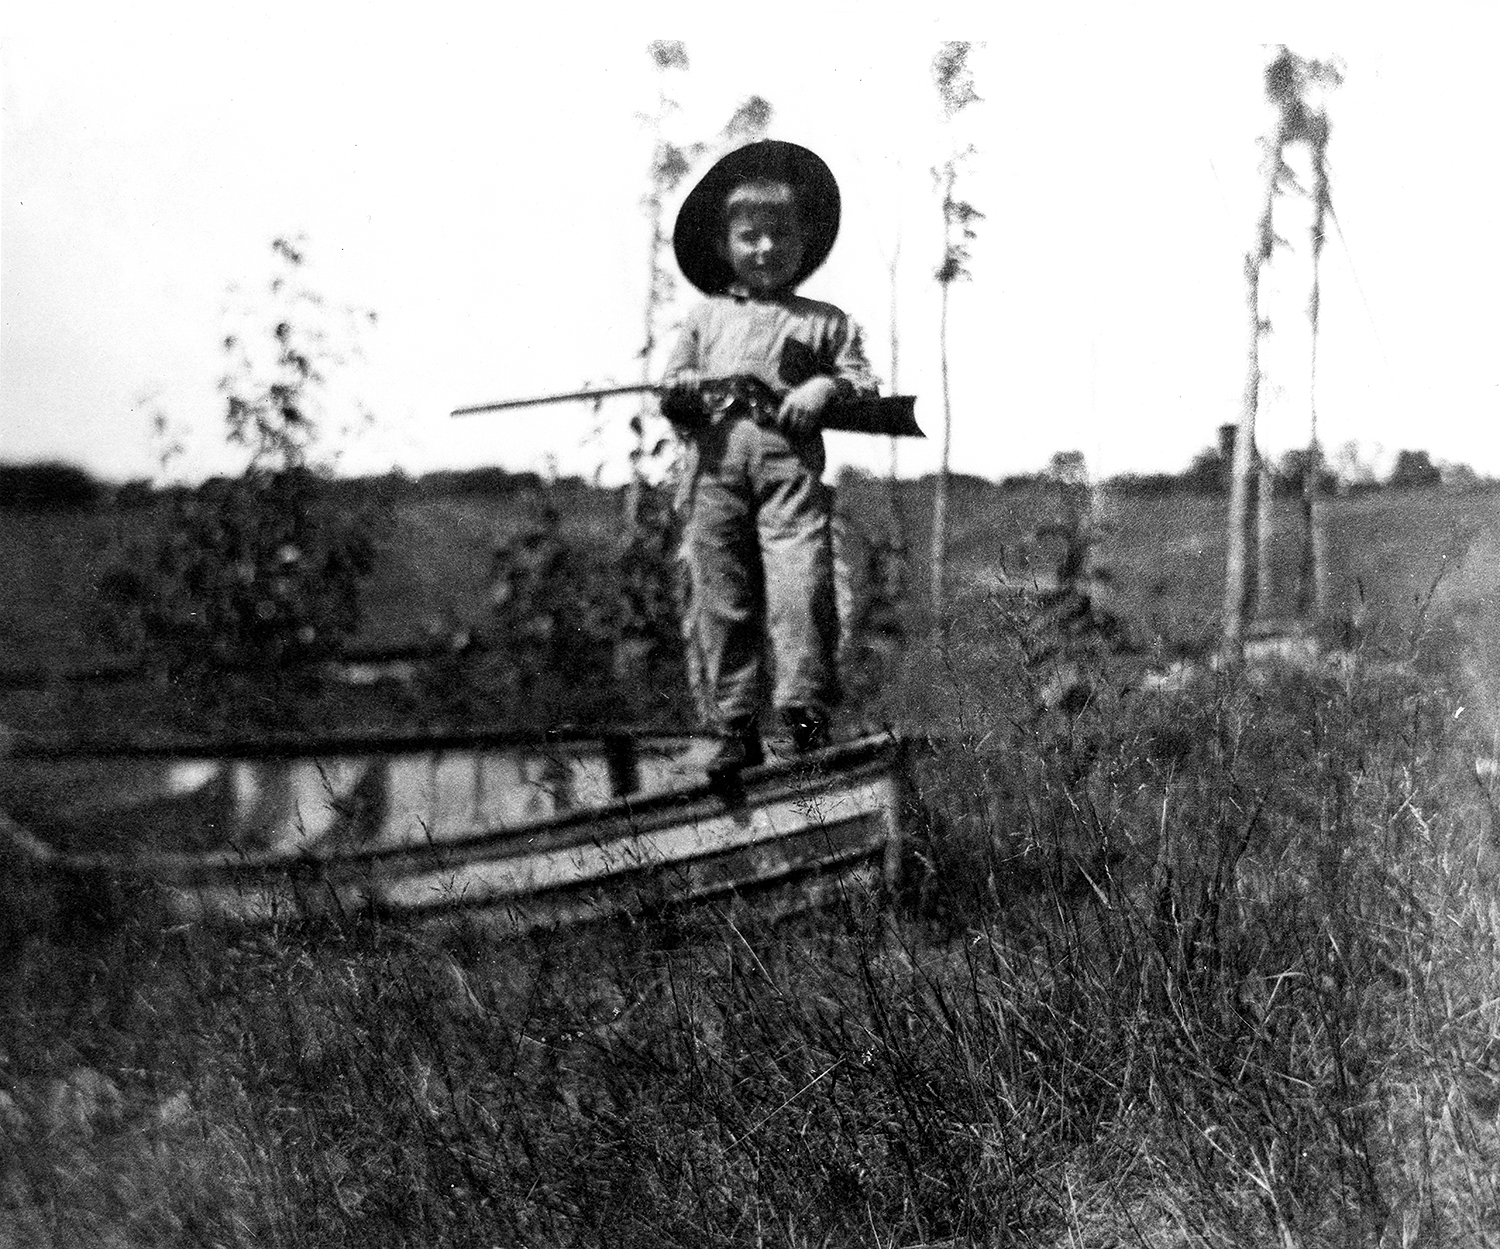 CHILDHOOD...Ernest Hemingway holding a gun at Walloon Lake. Copyright: Public Domain